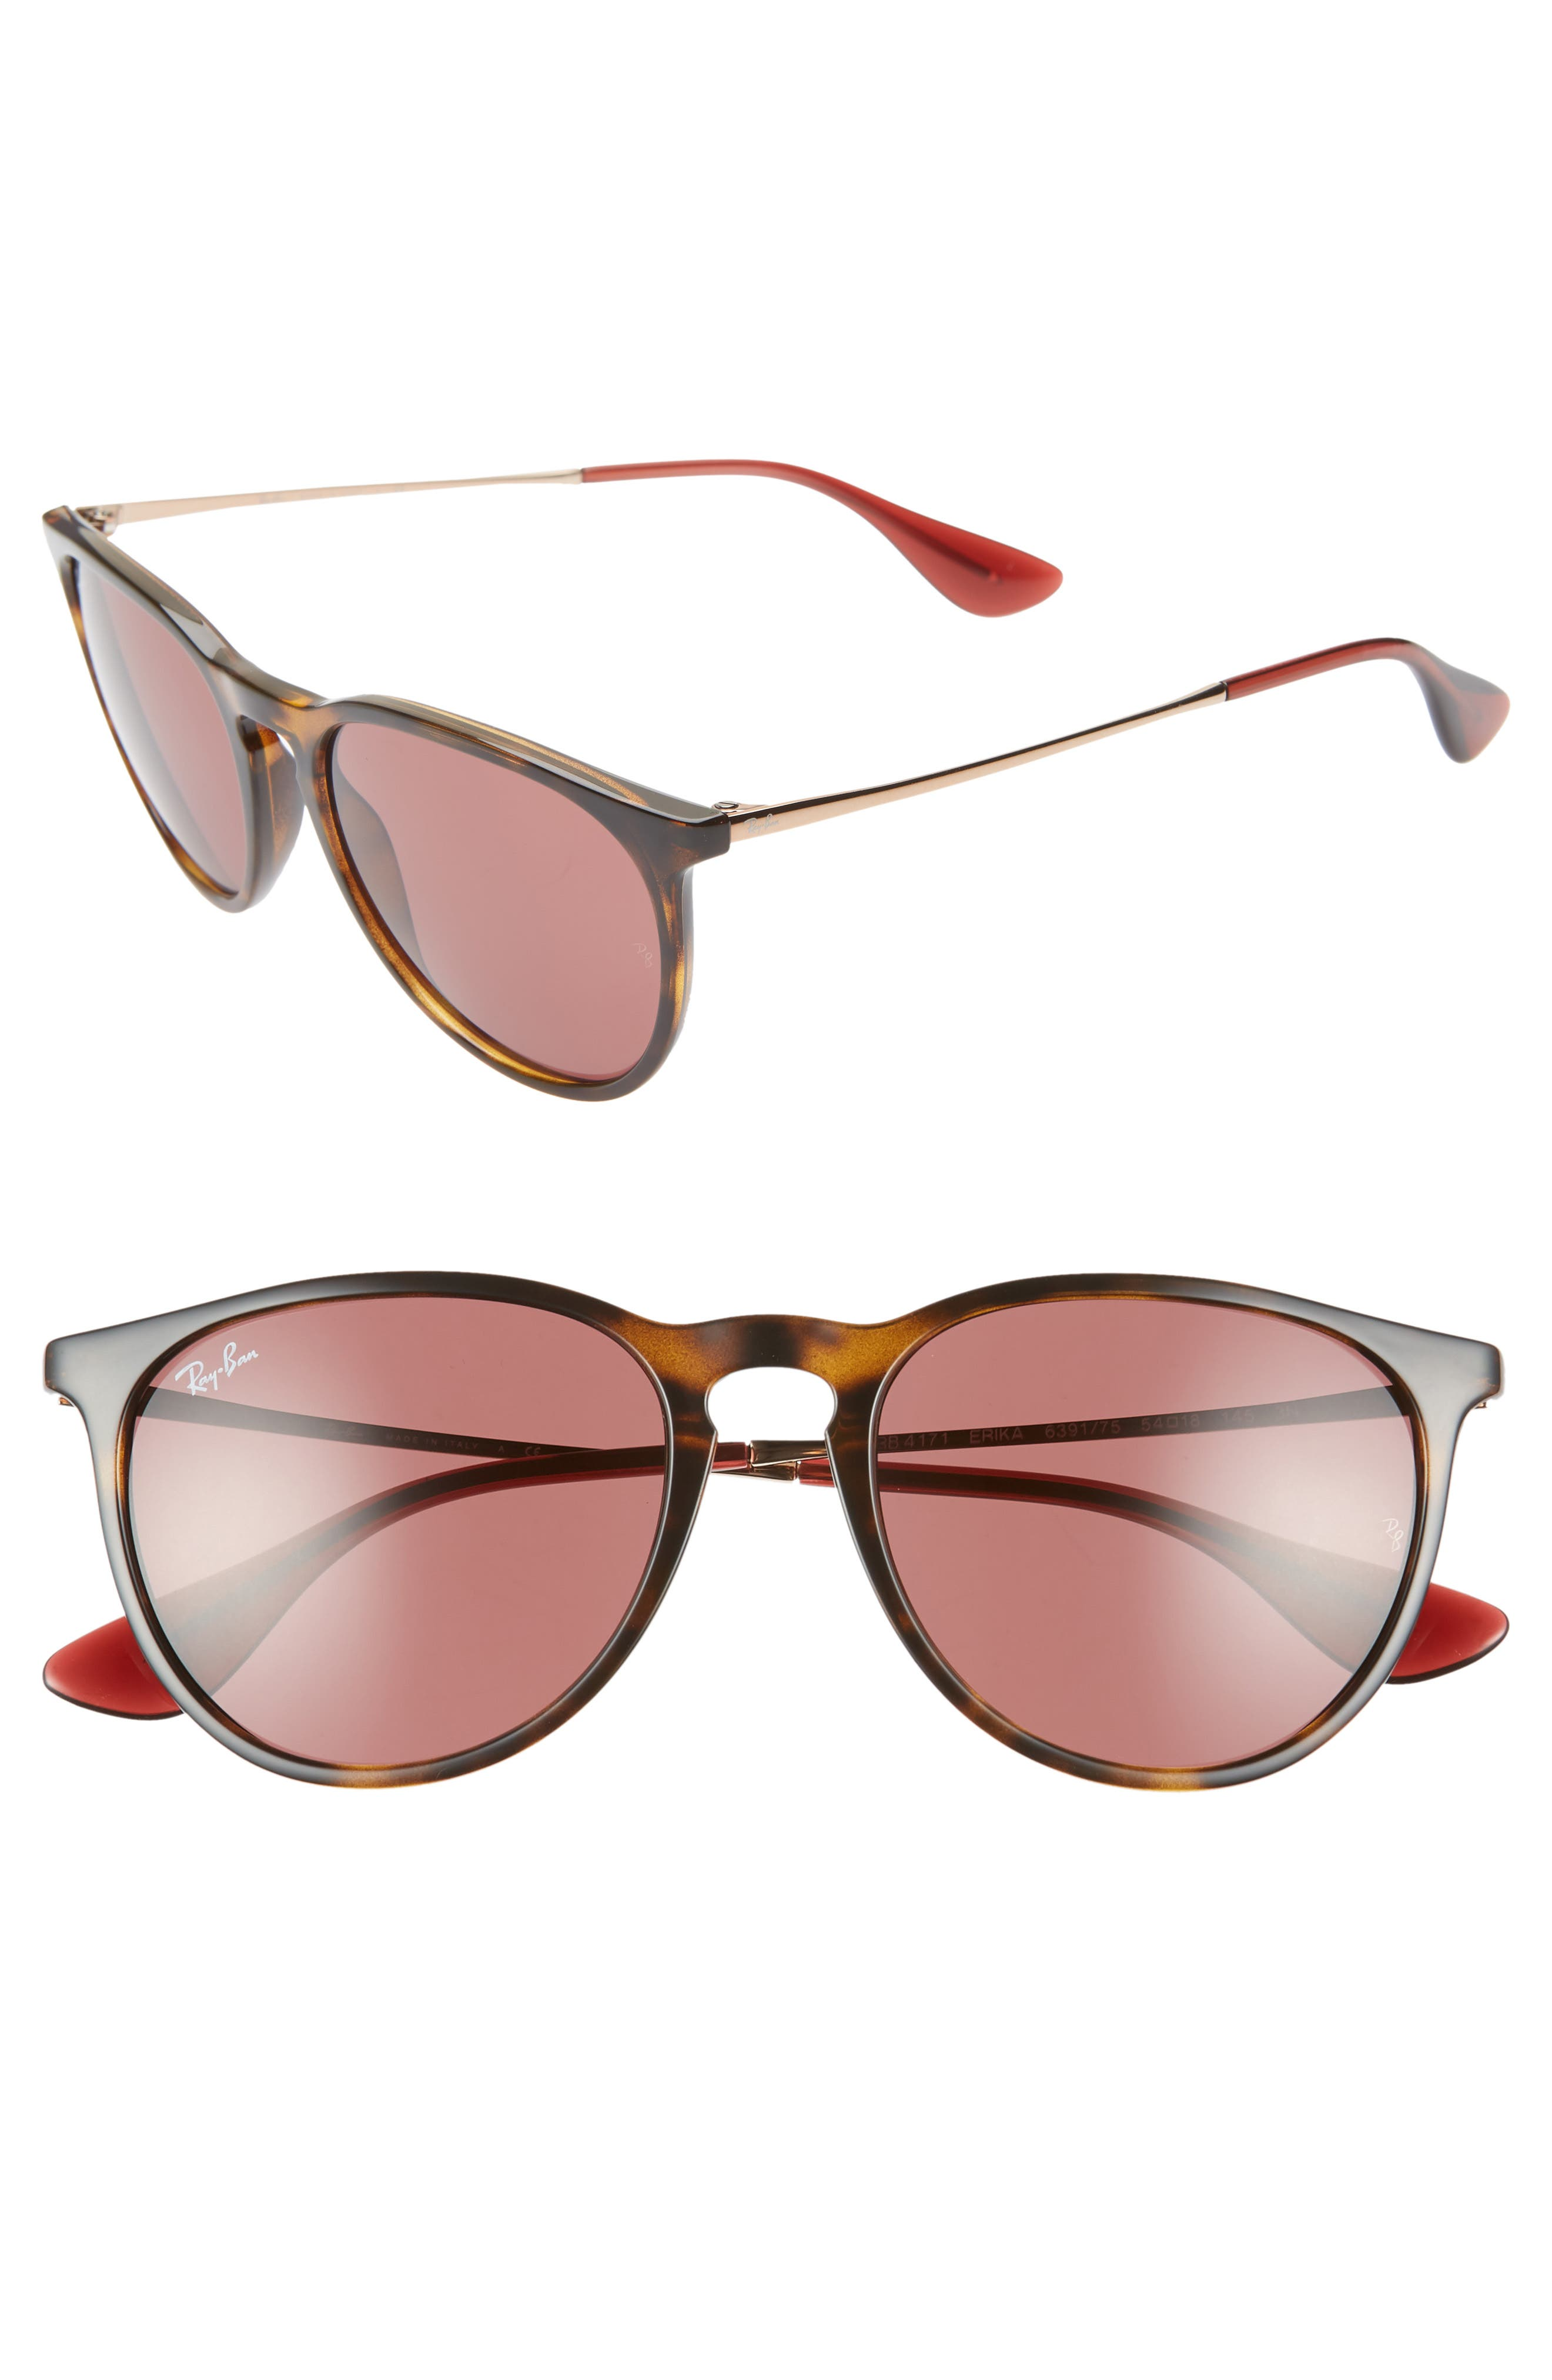 Ray-Ban Erika Classic 5m Sunglasses - Tortoise/ Red Solid